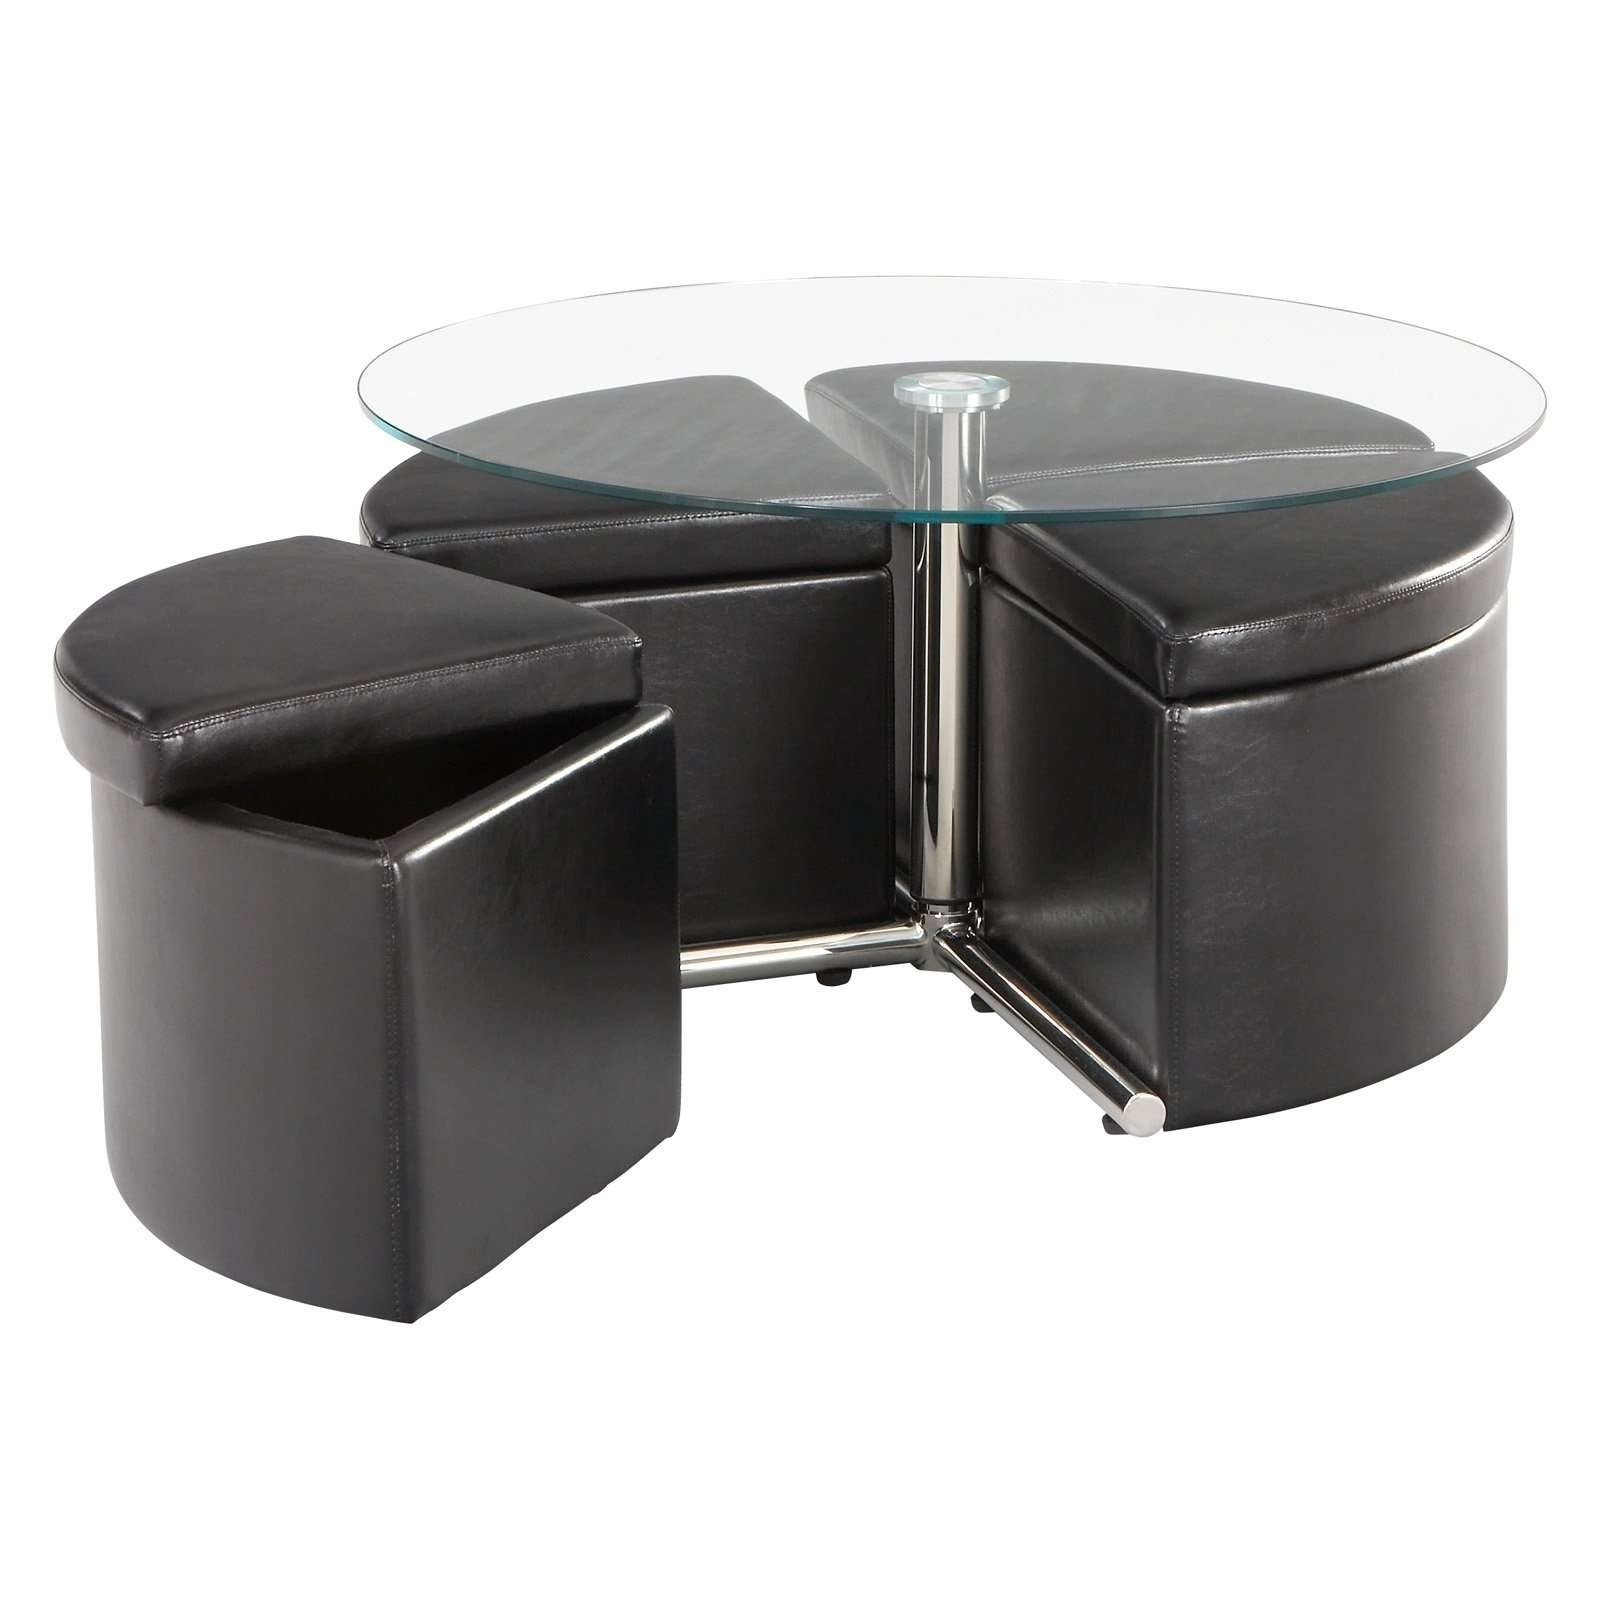 Good Round Coffee Table With Storage On Round Coffee Tables With Pertaining To Famous Circular Coffee Tables With Storage (Gallery 19 of 20)